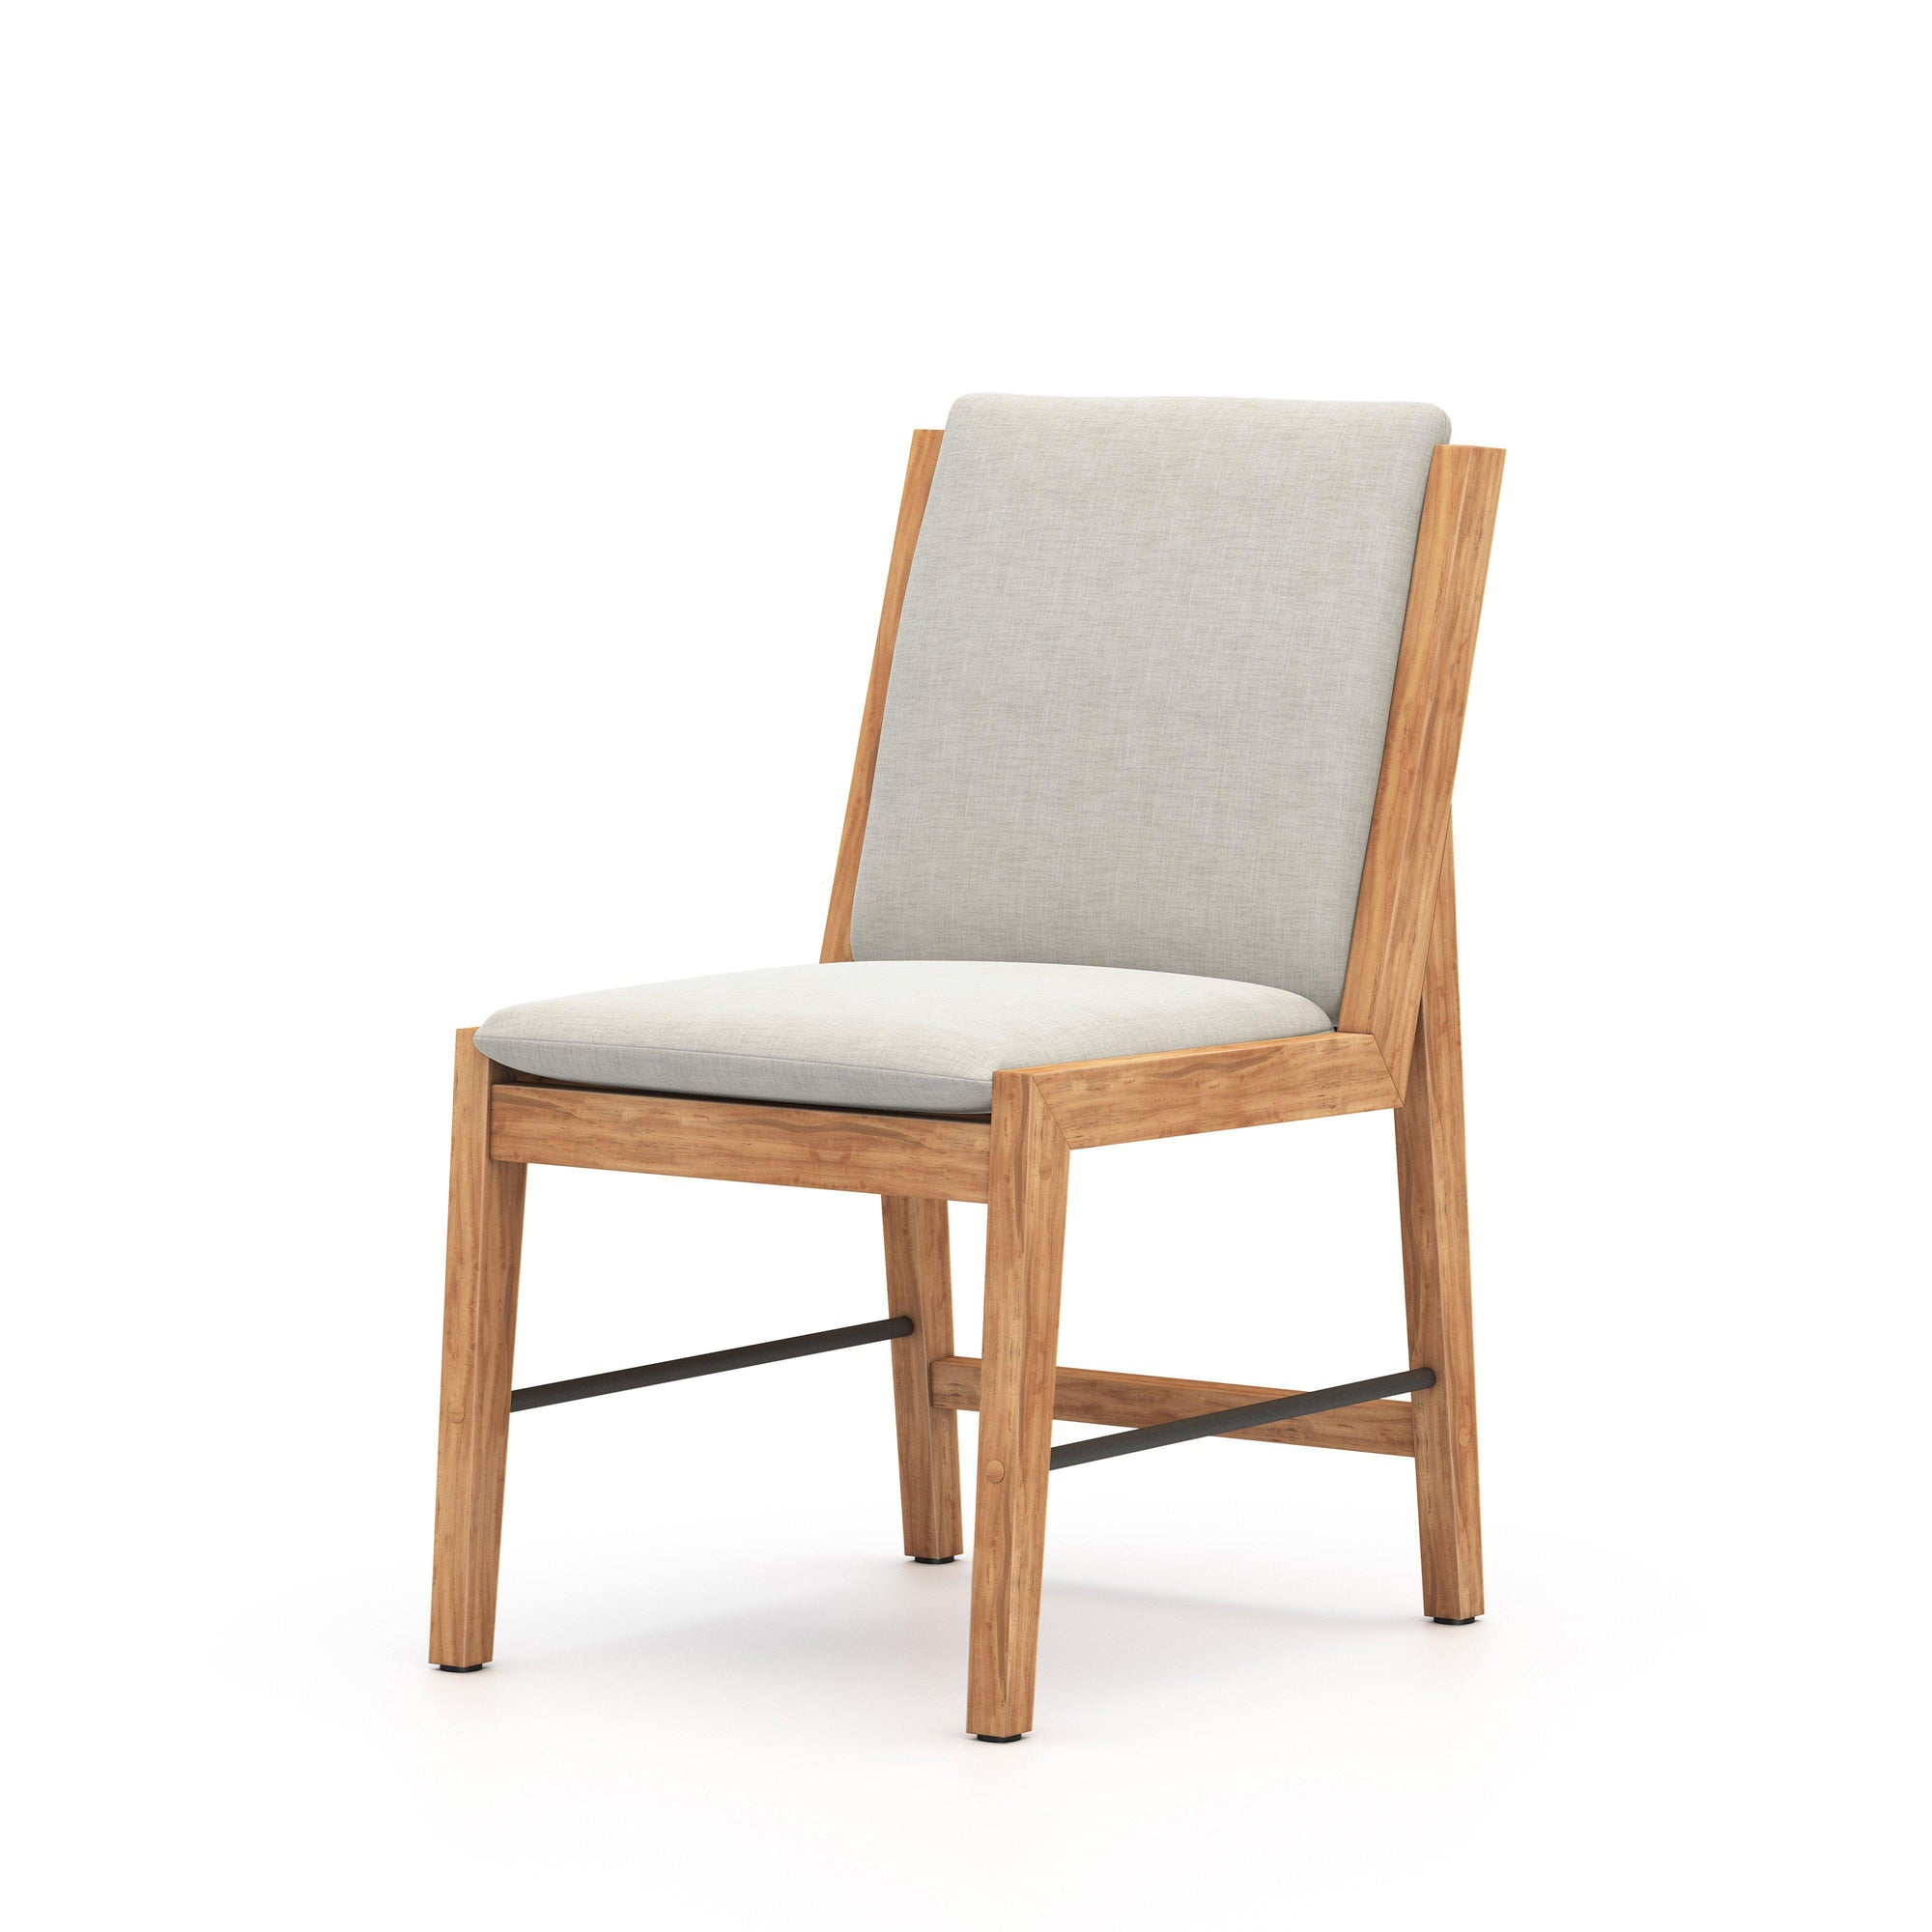 Gavin Outdoor Dining Chair